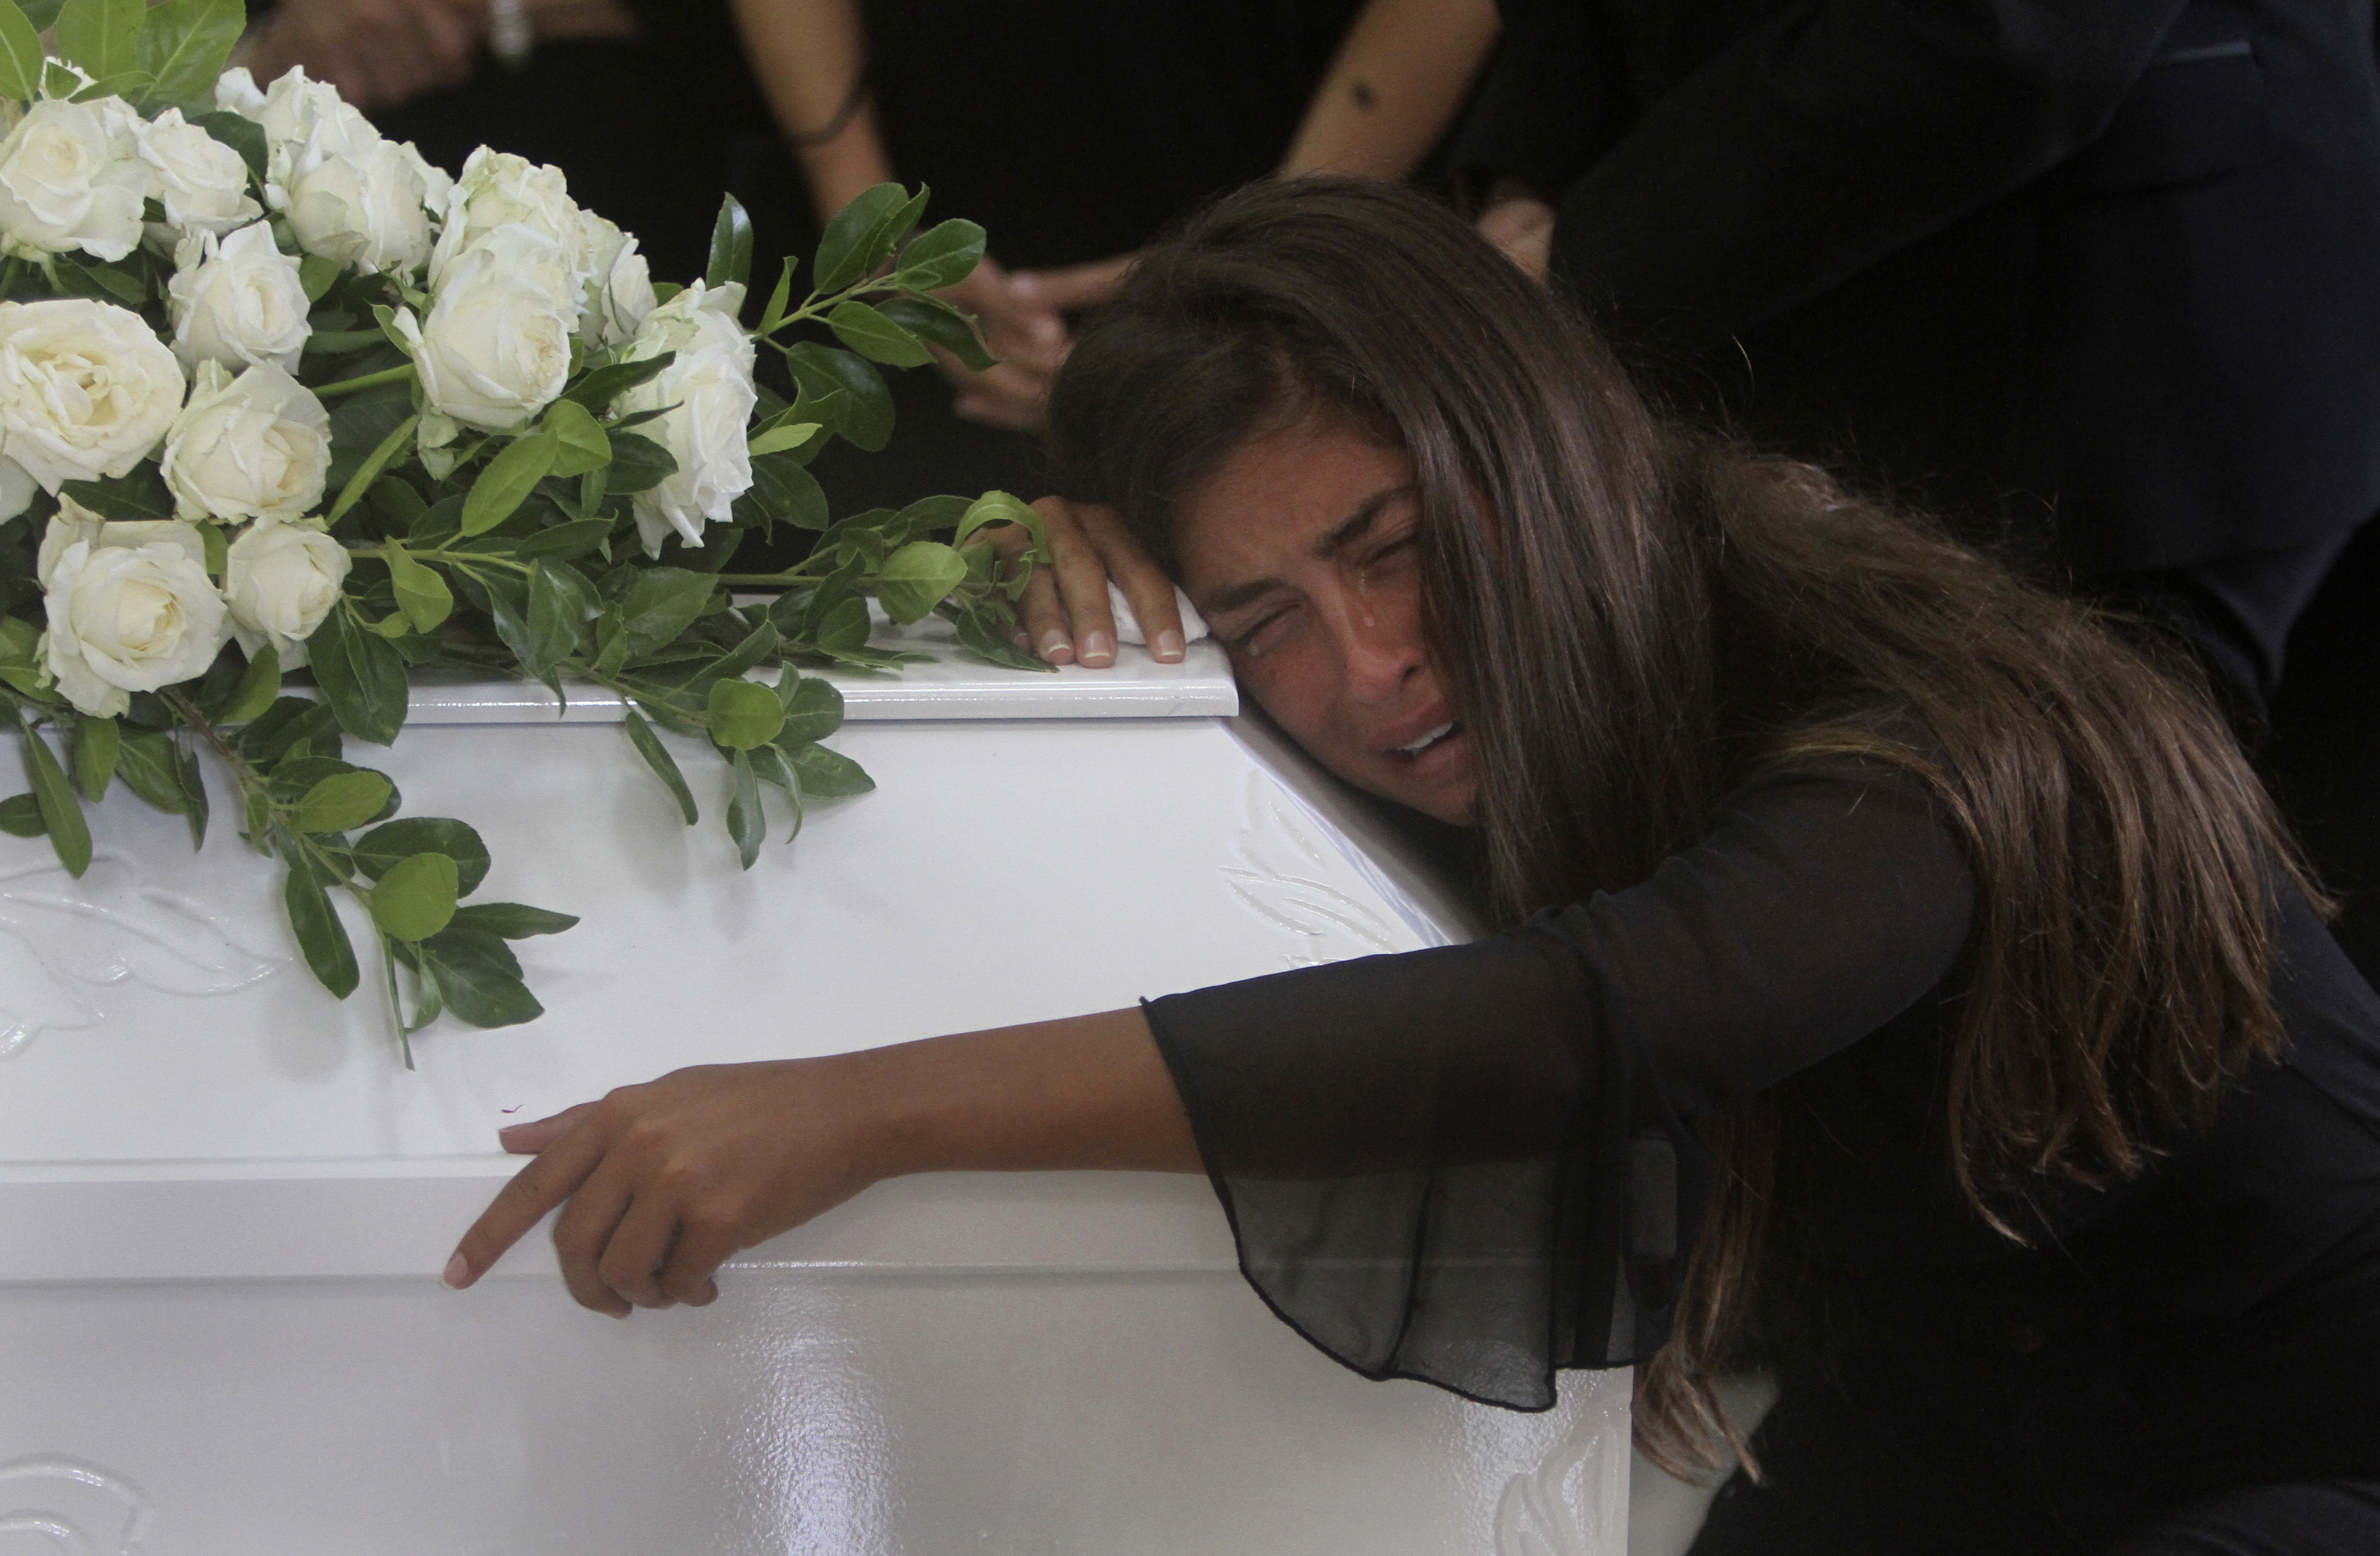 "The sister of Nicole al-Helou, who was killed by the explosion Tuesday that hit the seaport of Beirut, mourns on her coffin during her funeral, in Sarba village, southern Lebanon, Thursday, Aug. 6, 2020. French President Emmanuel Macron said an independent, transparent investigation into the massive explosion in Beirut is ""owed to the victims and their families"" by Lebanese authorities. During Macron's visit to the city on Thursday, angry crowds approached him and the Beirut governor as they walked through a blast-torn street. (AP Photo/Mohammed Zaatari)"